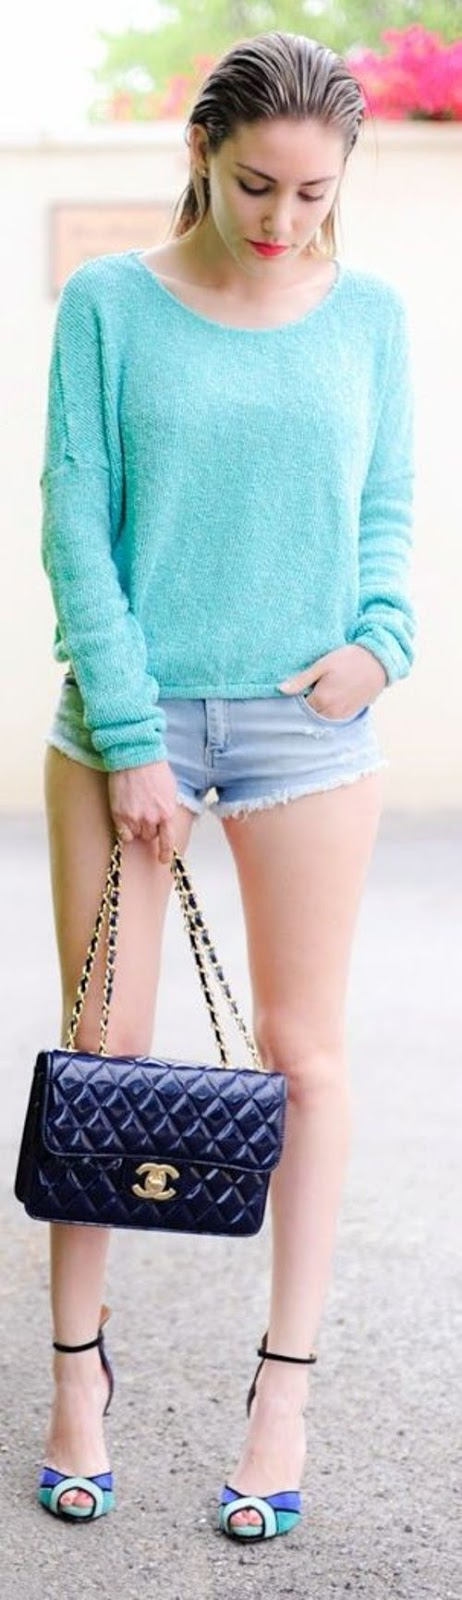 street style: blue shades with turquoise sweater and denim shorts